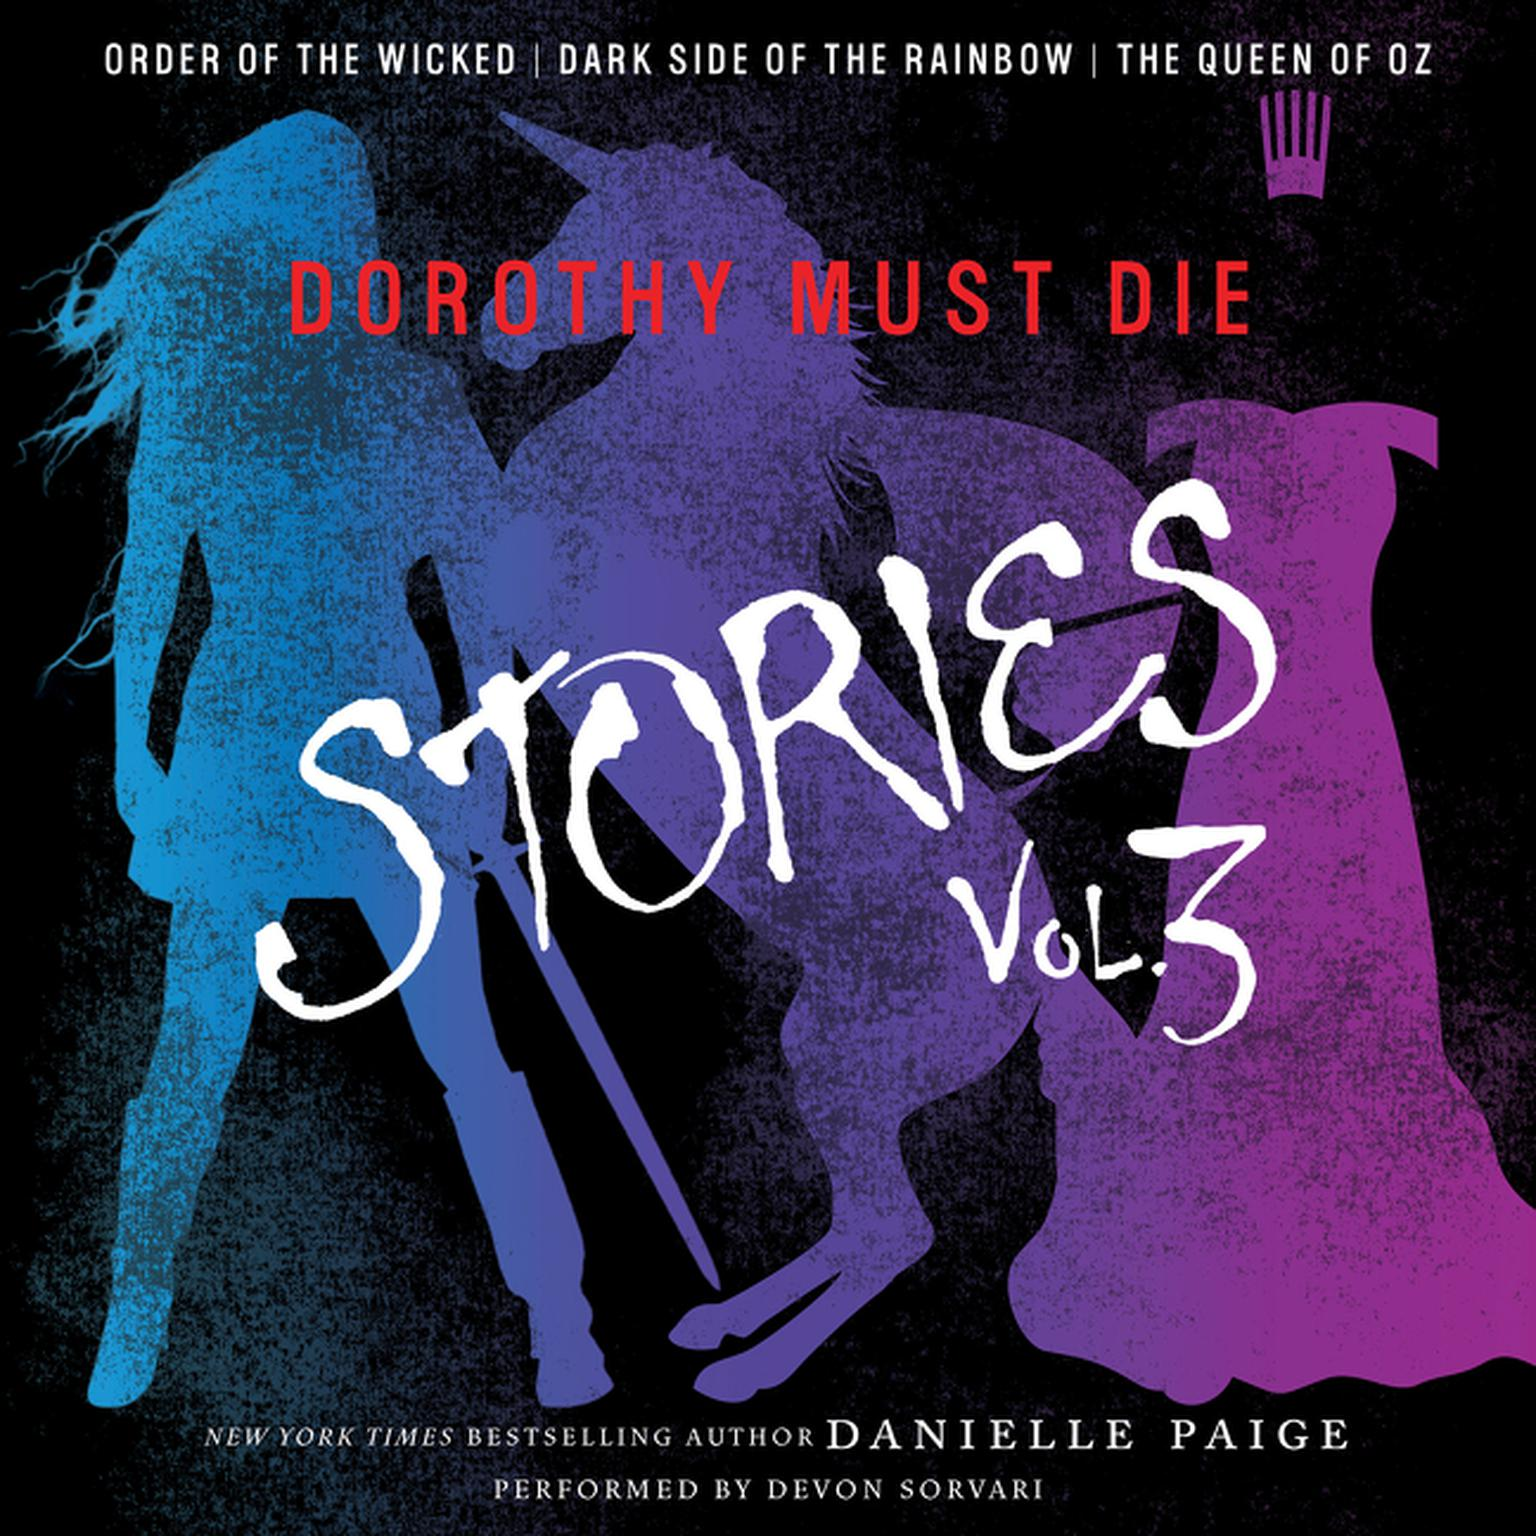 Printable Dorothy Must Die Stories Volume 3: Order of the Wicked, Dark Side of the Rainbow, The Queen of Oz Audiobook Cover Art